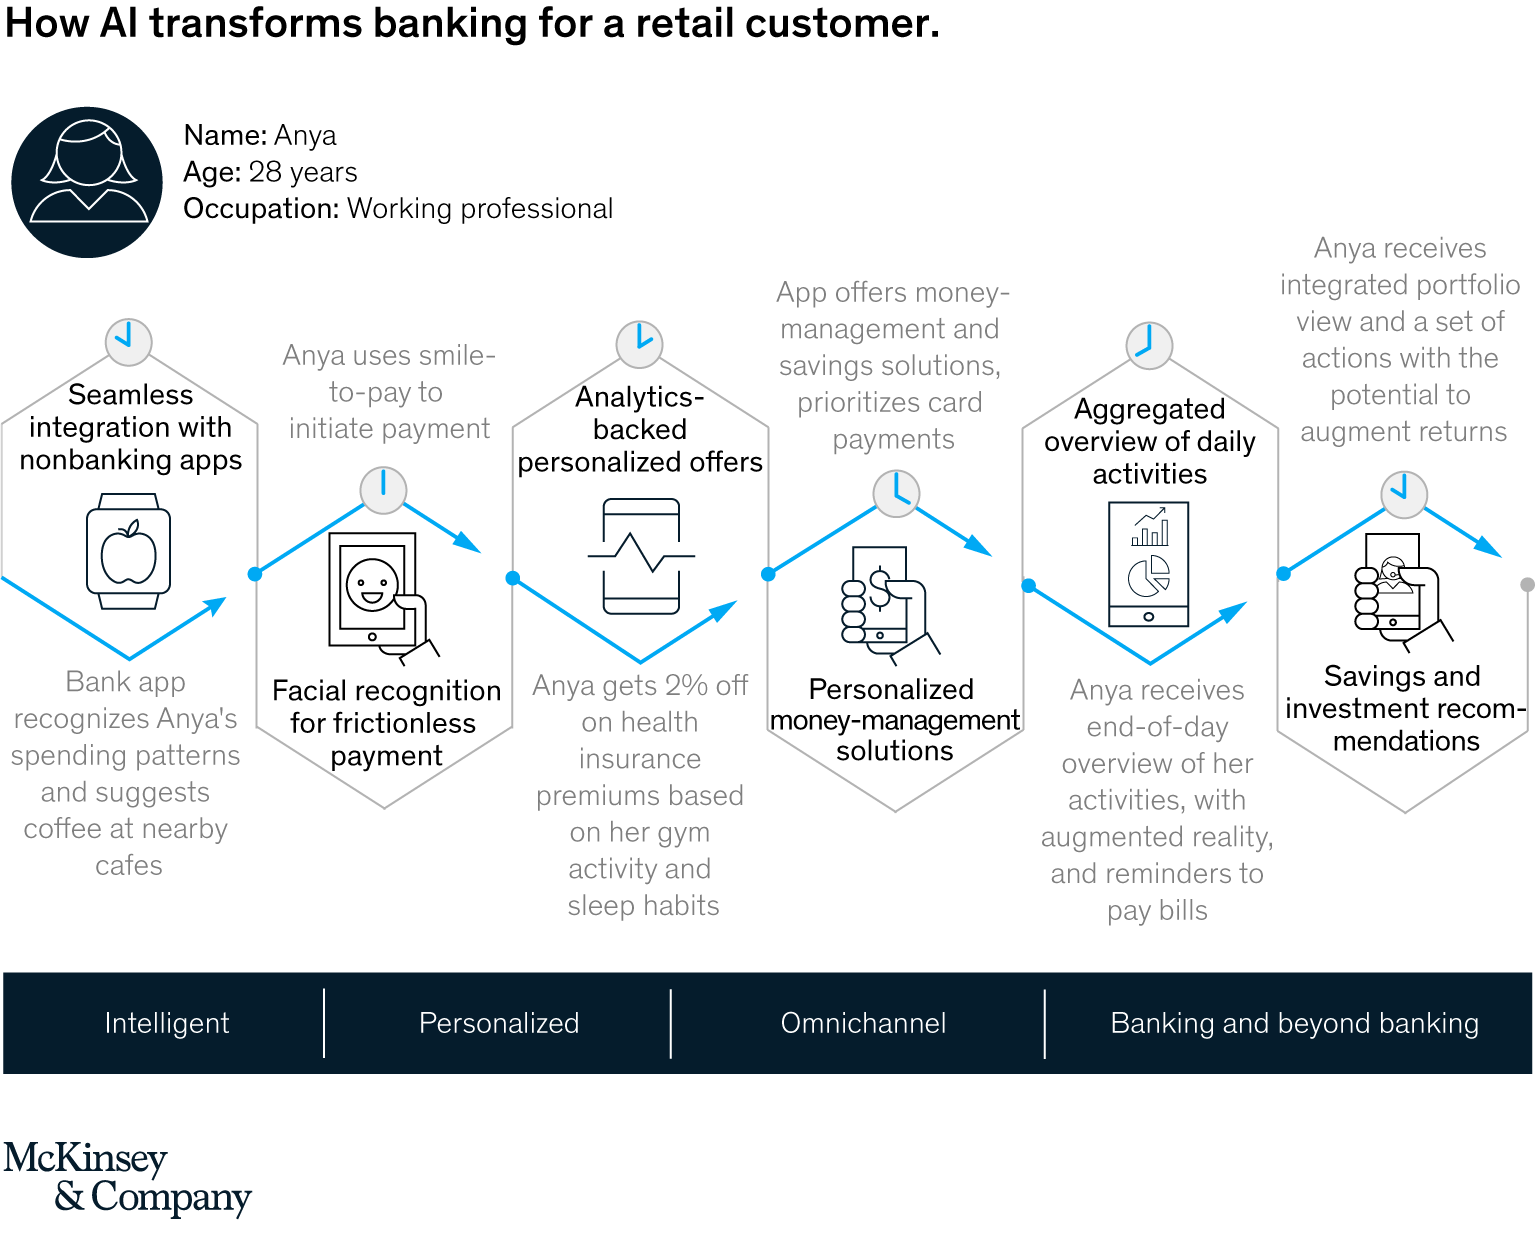 How AI transforms banking for a retail customer, AI-bank of the future- Can banks meet the AI challenge, McKinsey & Company, September 2020